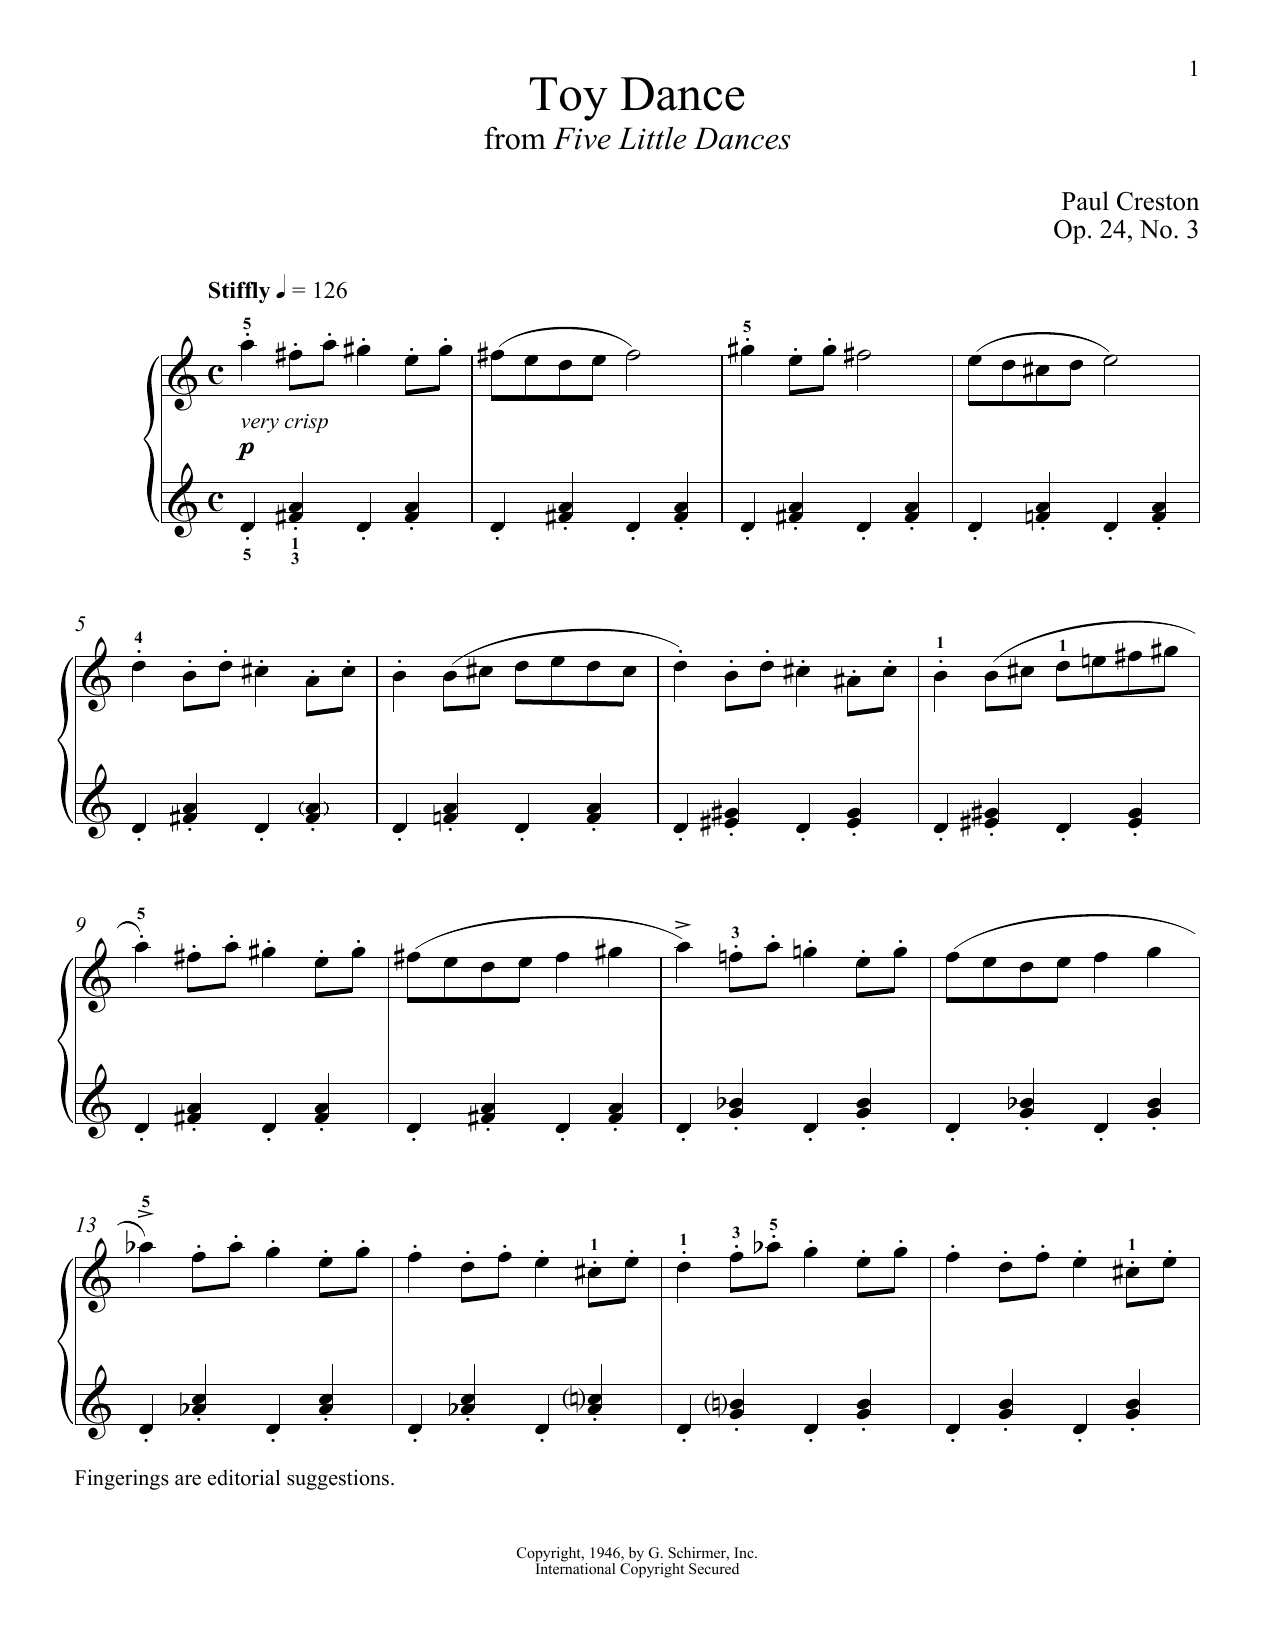 Paul Creston Toy Dance sheet music notes and chords. Download Printable PDF.